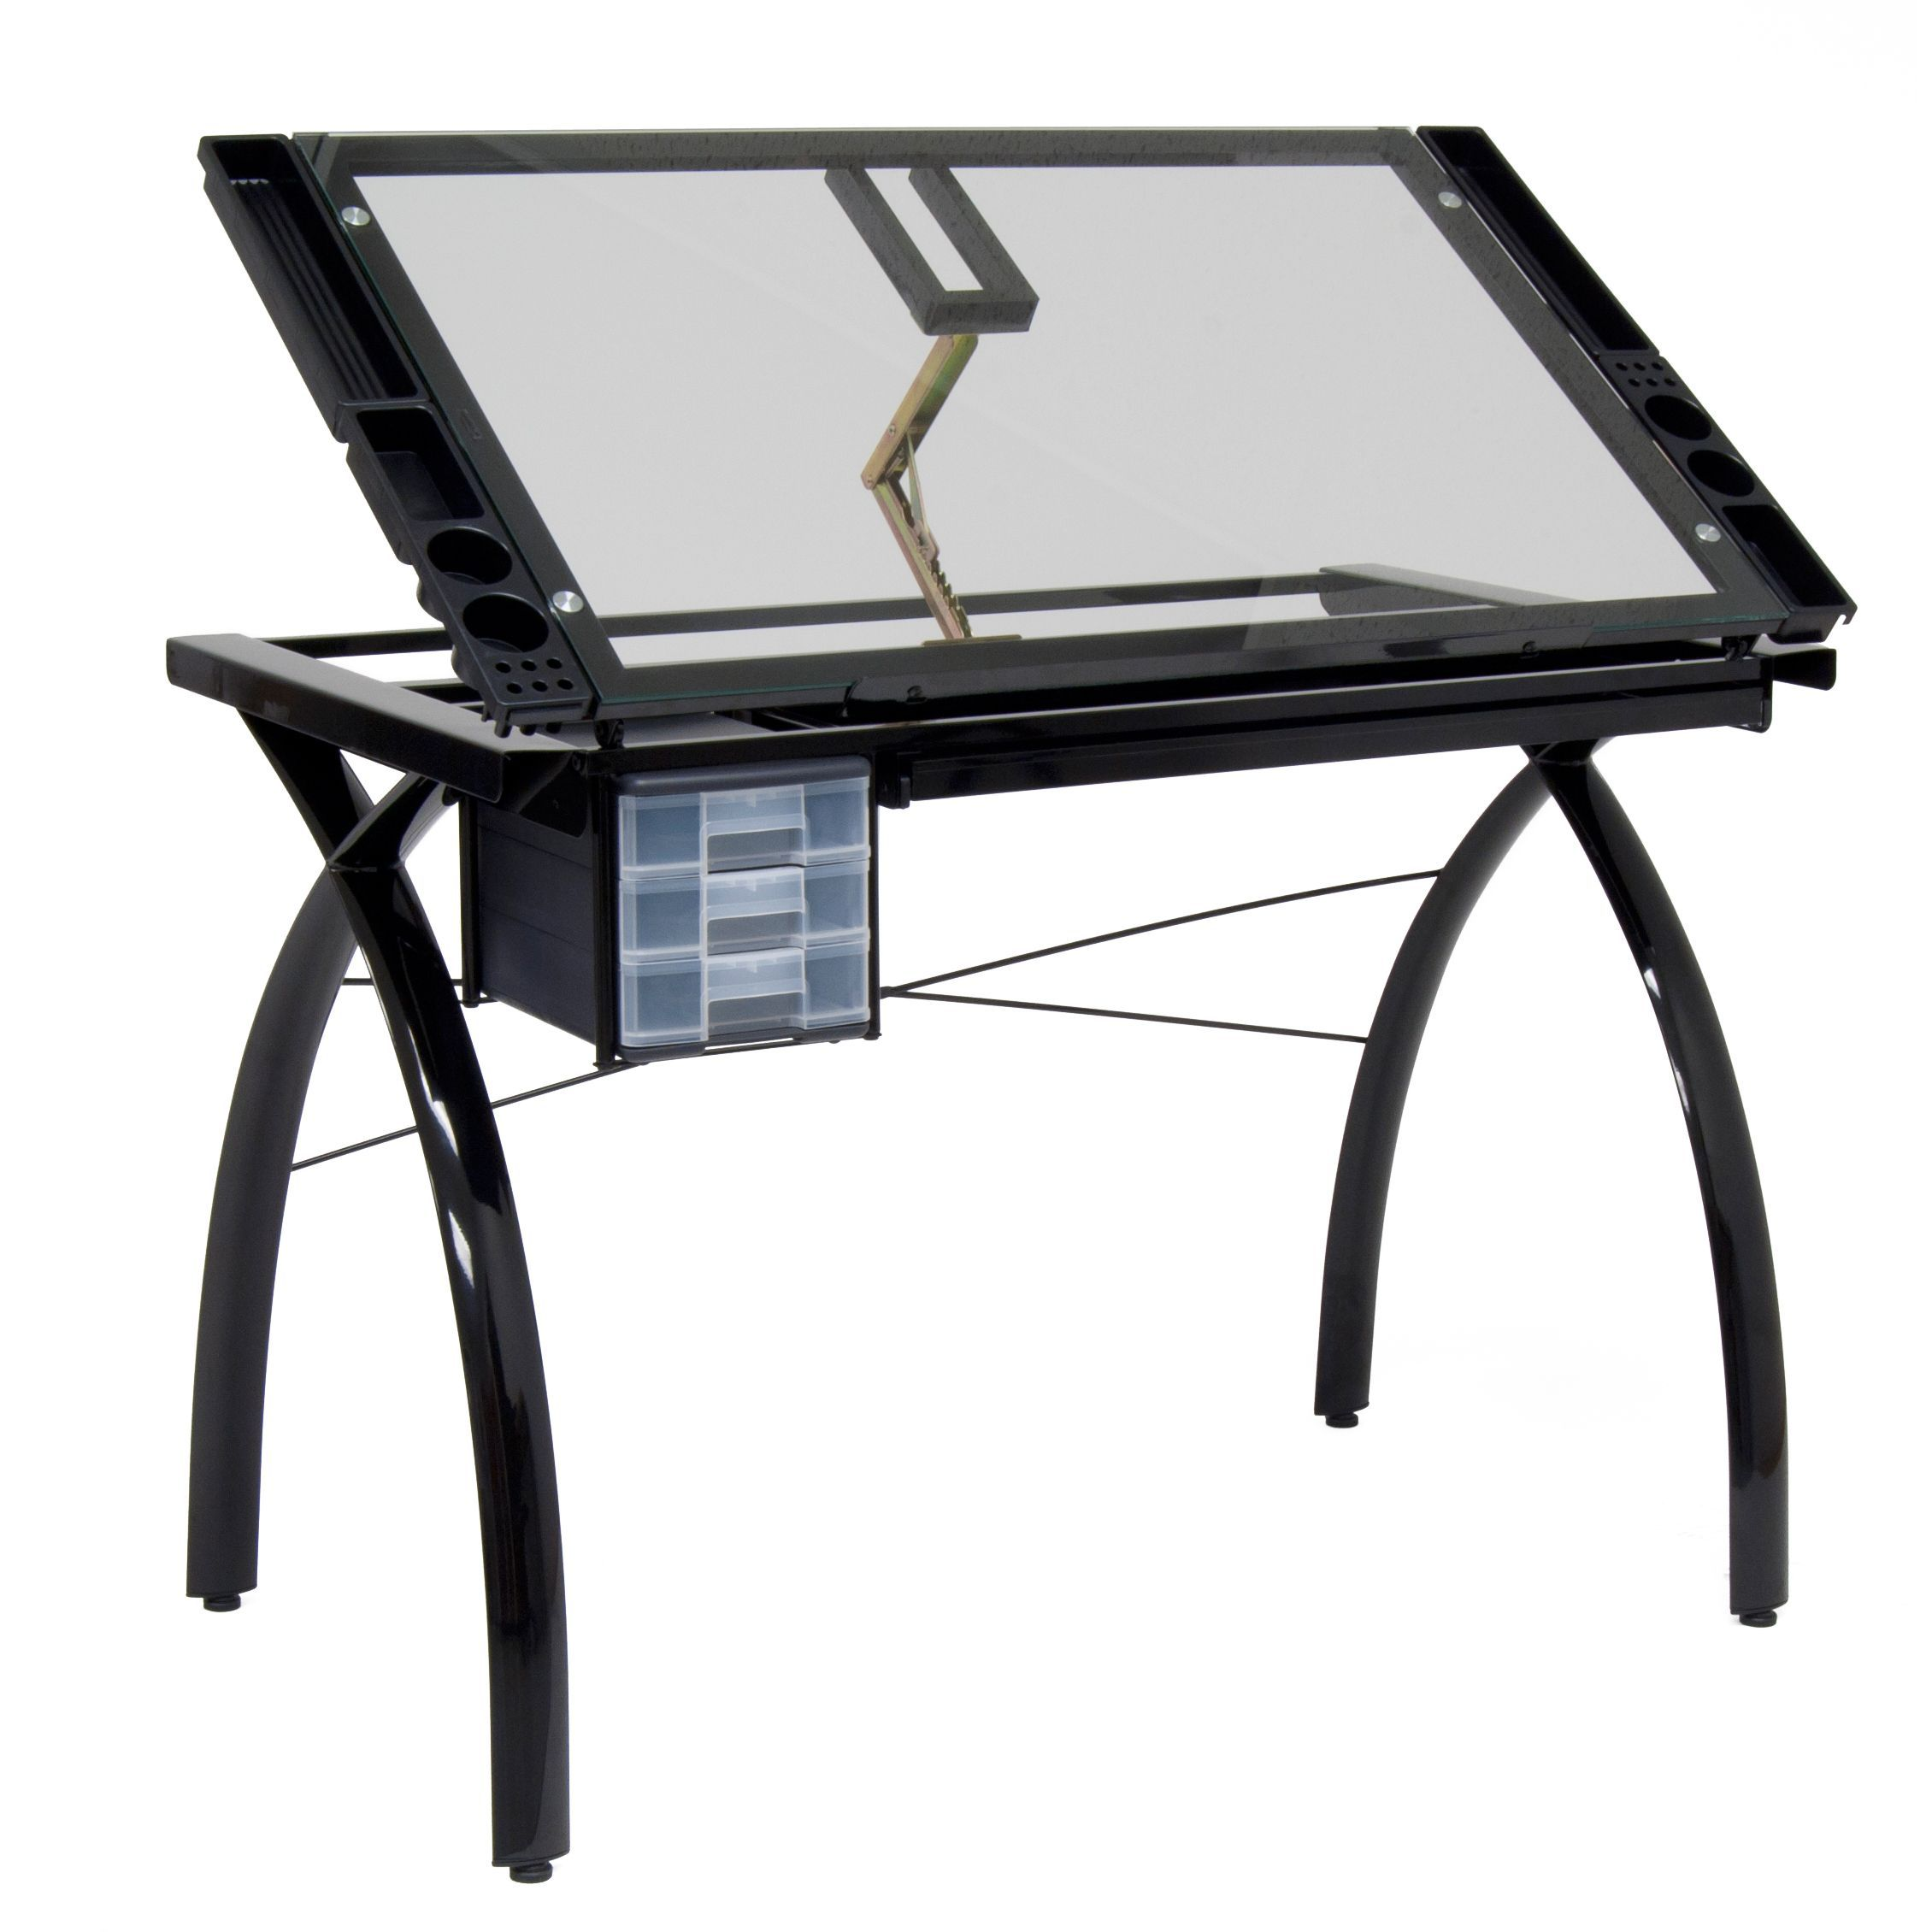 Superieur Studio Designs 10072 Futura Craft Station, Black/Clear Glass The Perfect  Multi Functional Contemporary Table: Studio Designsu0027 Futura Craft Station  Is Great ...